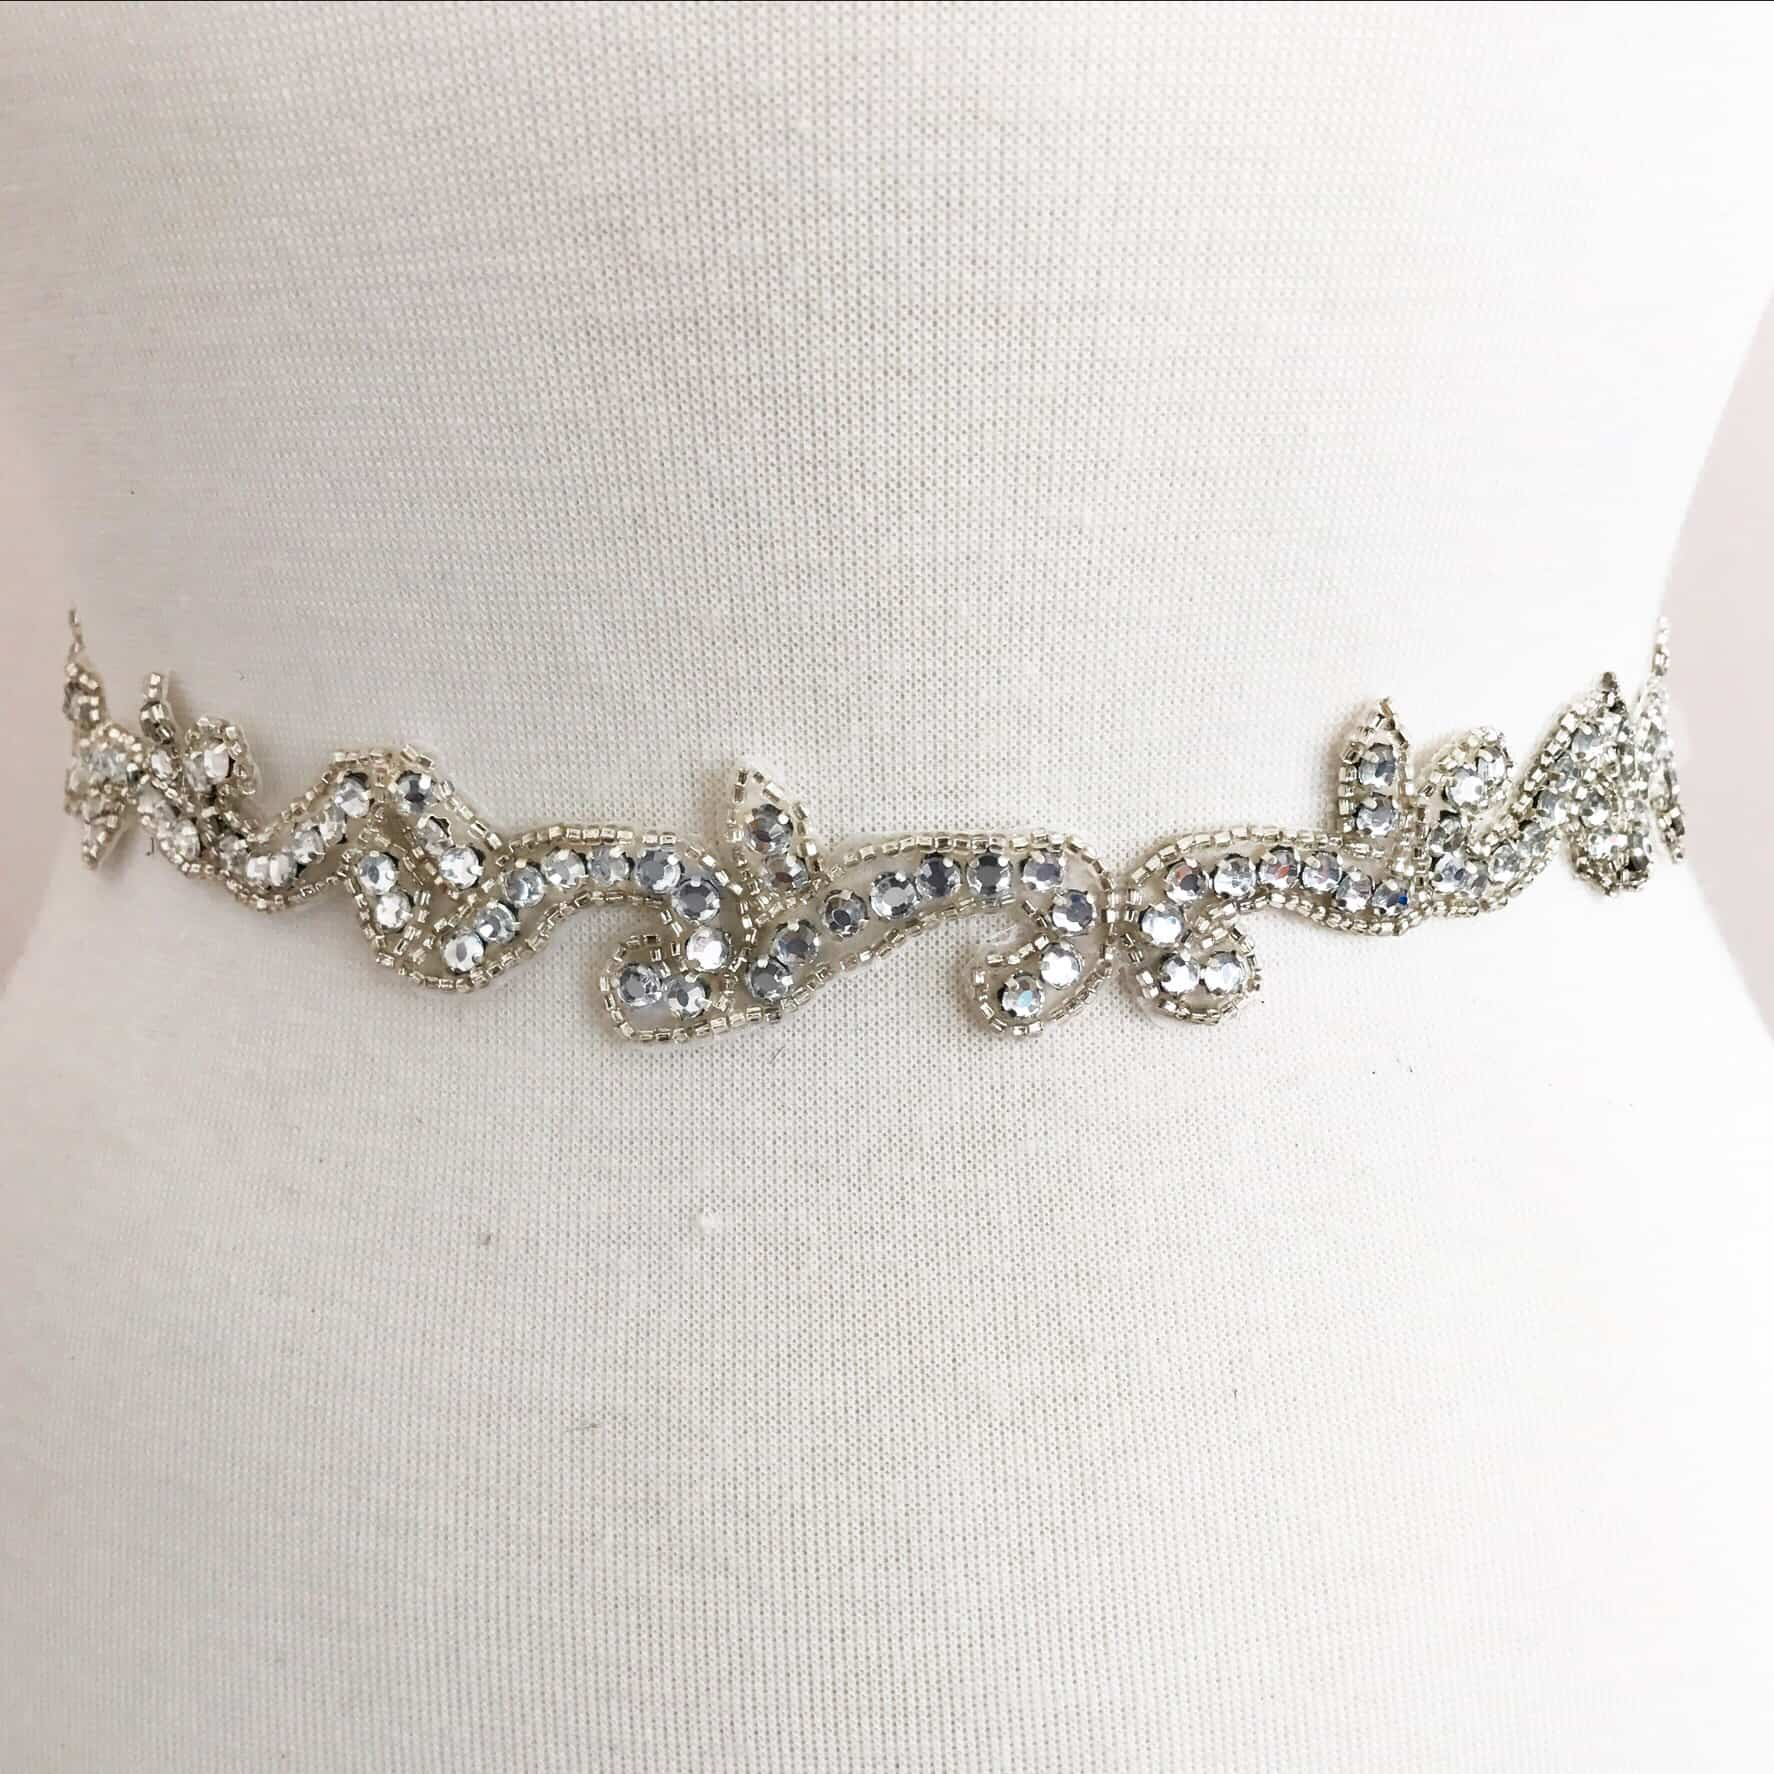 *SALE* Jacinda Rhinestone Beaded Trim